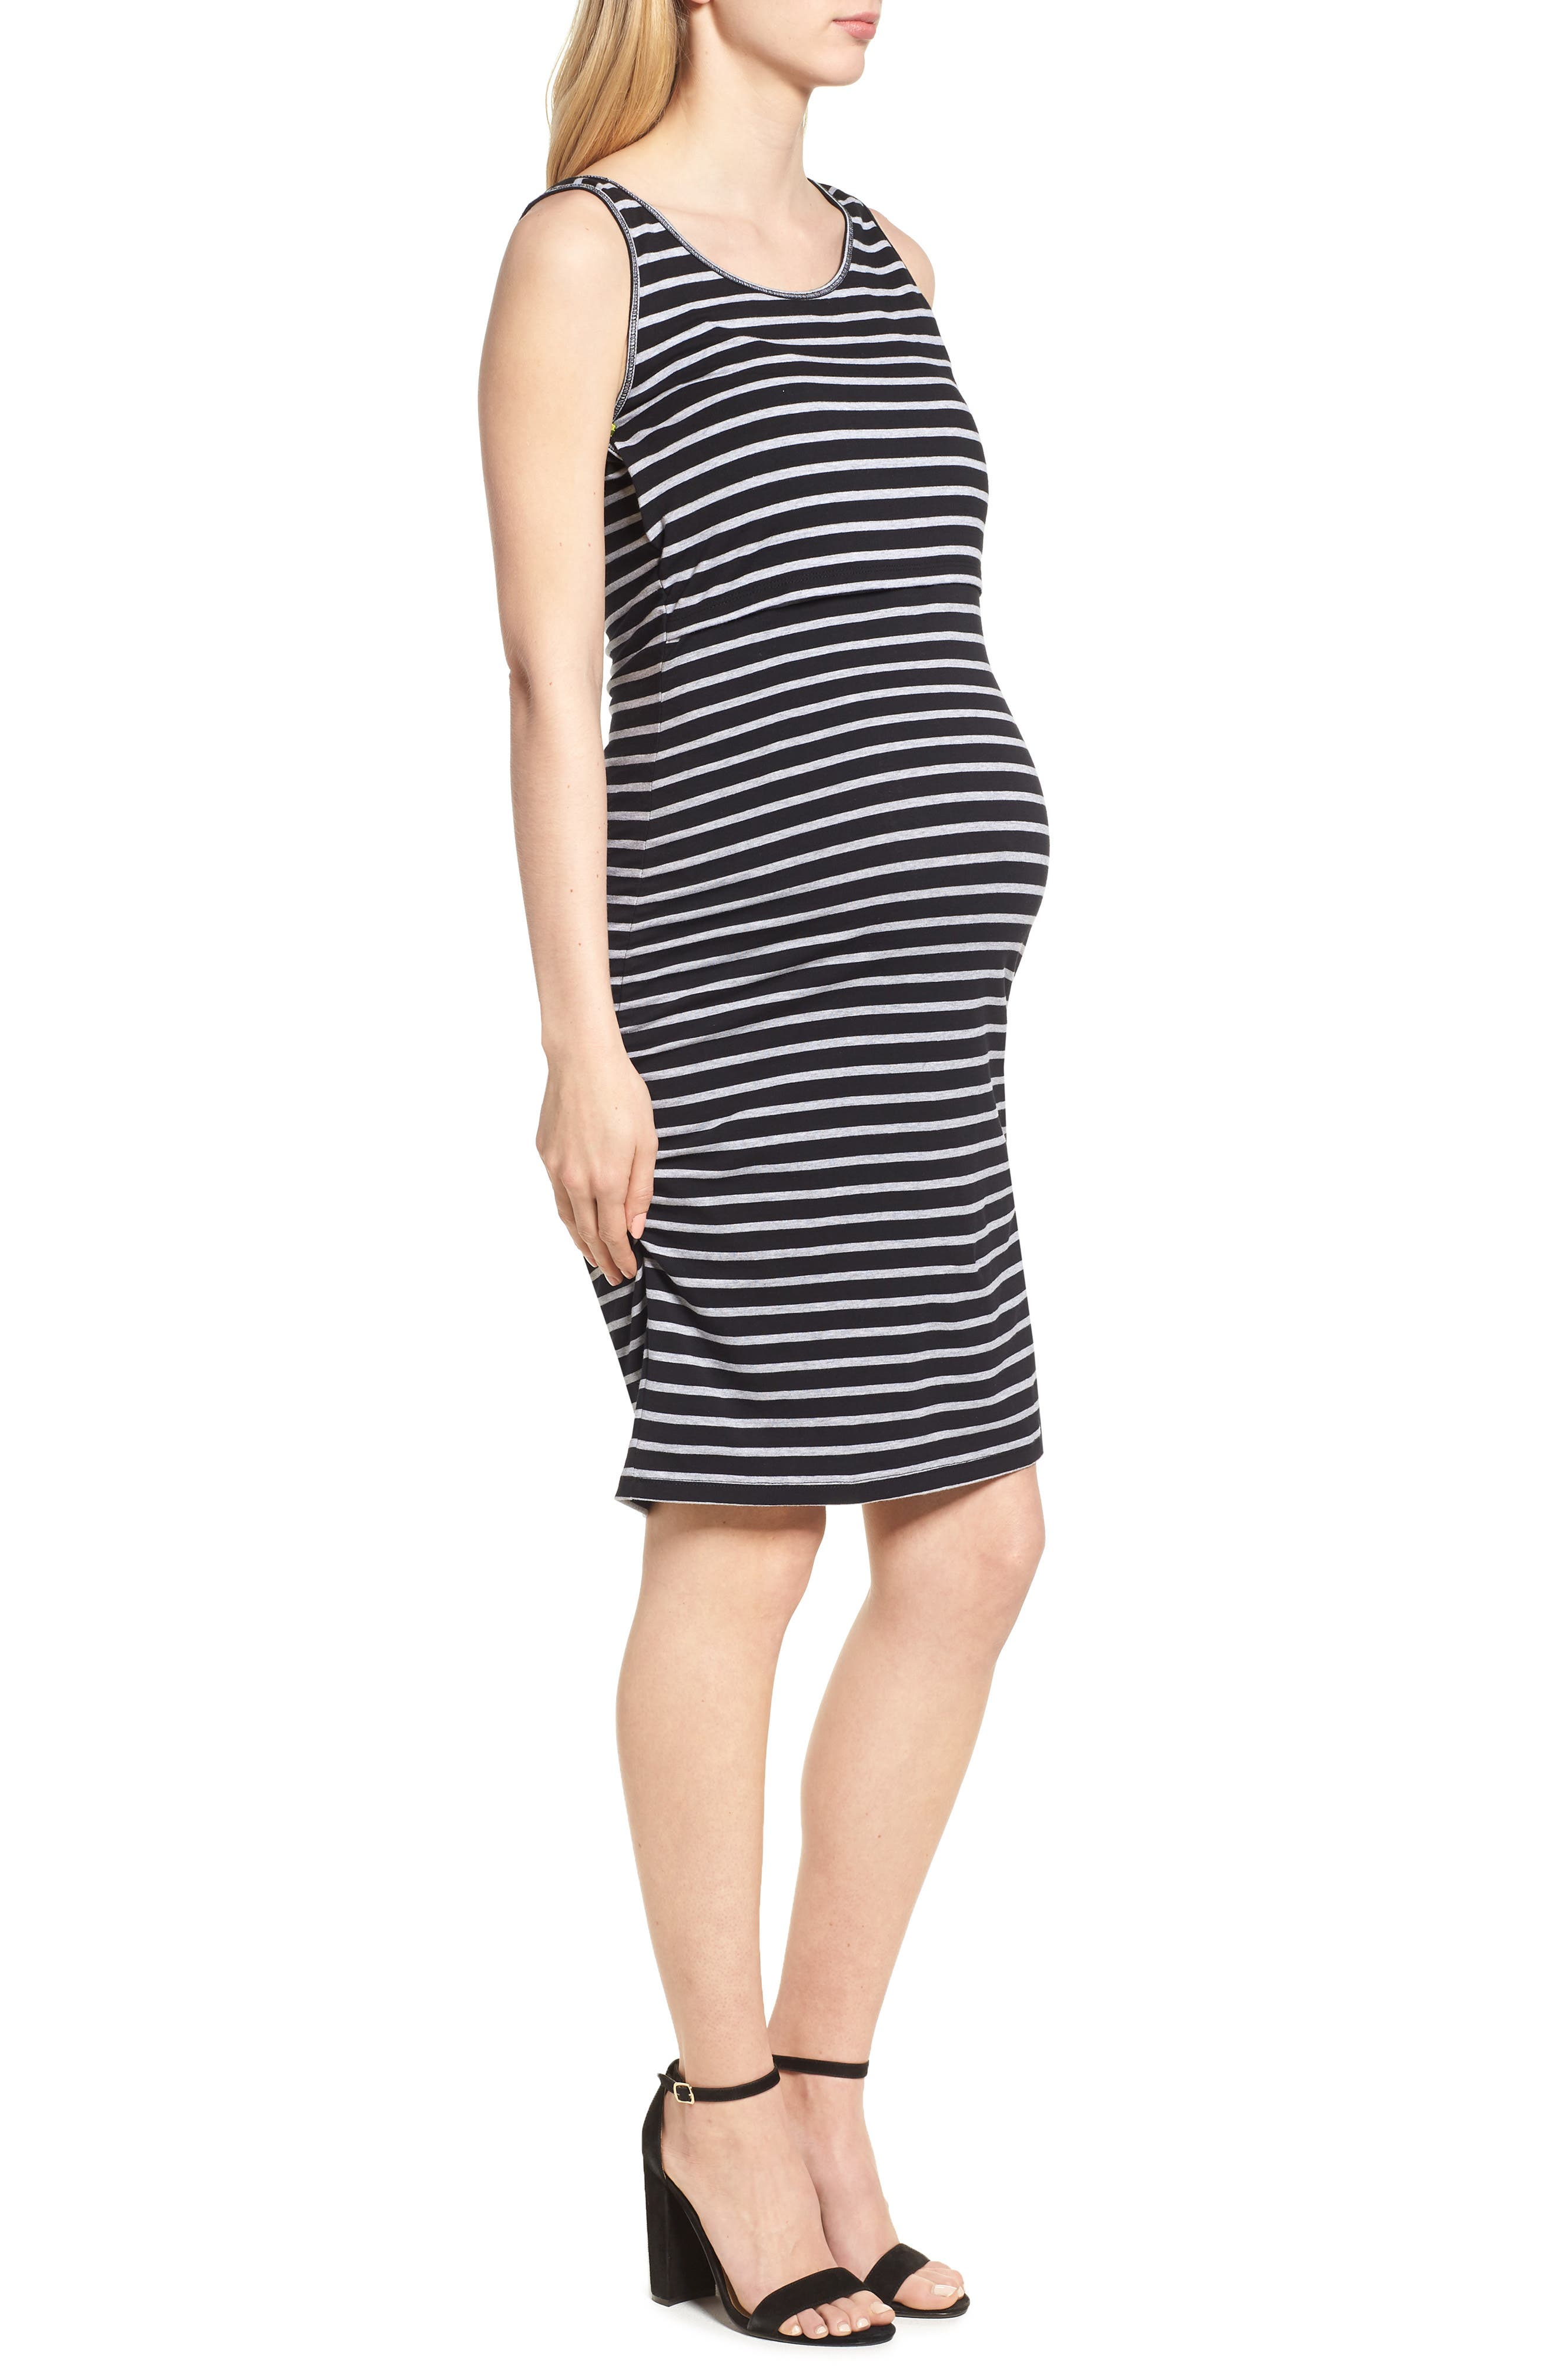 MODERN ETERNITY,                             Maternity/Nursing Tank Dress,                             Alternate thumbnail 3, color,                             BLACK/ GREY